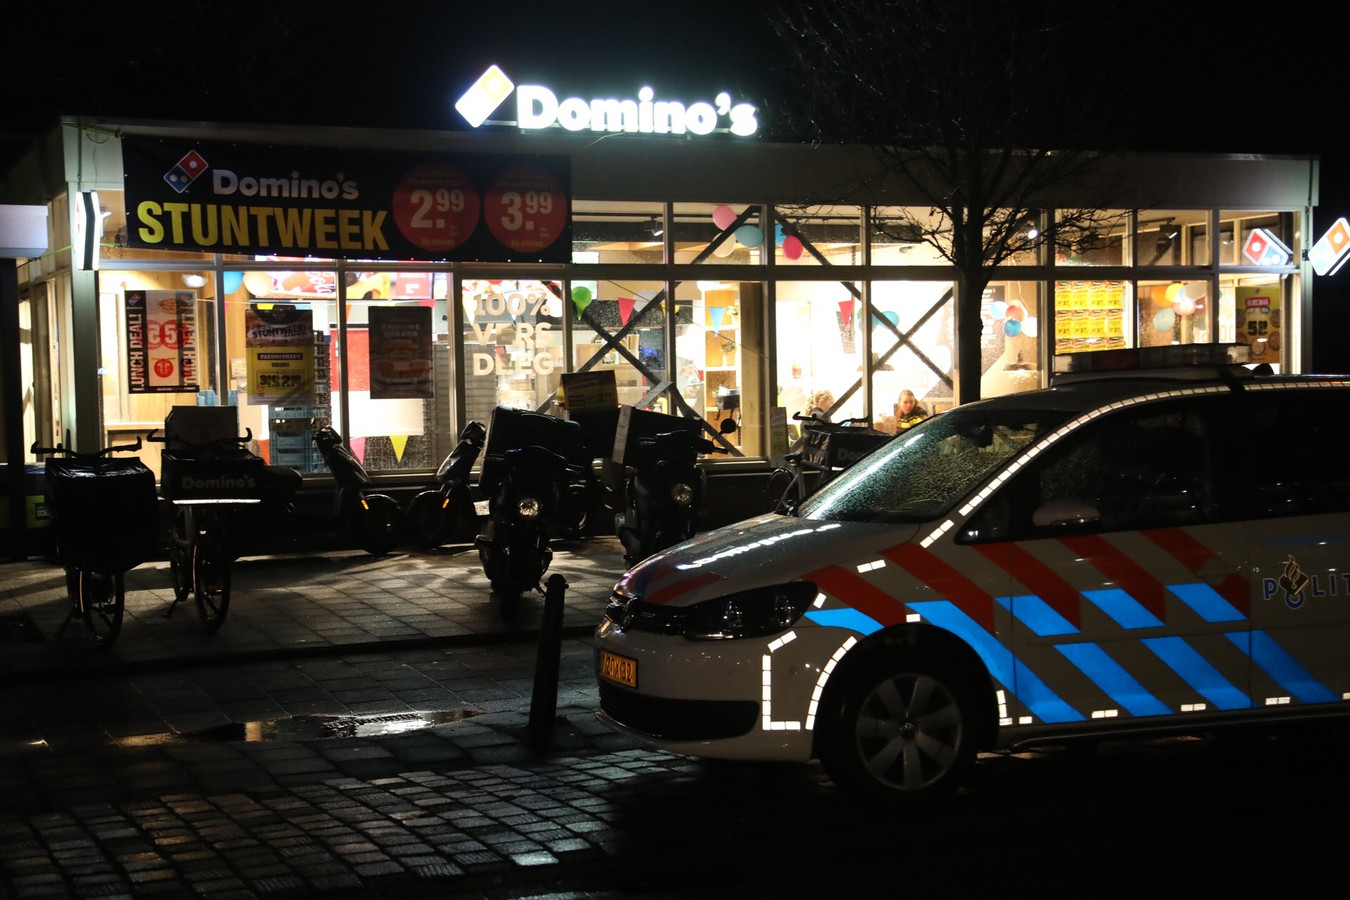 Gewapende overval op Domino's pizza in Oss